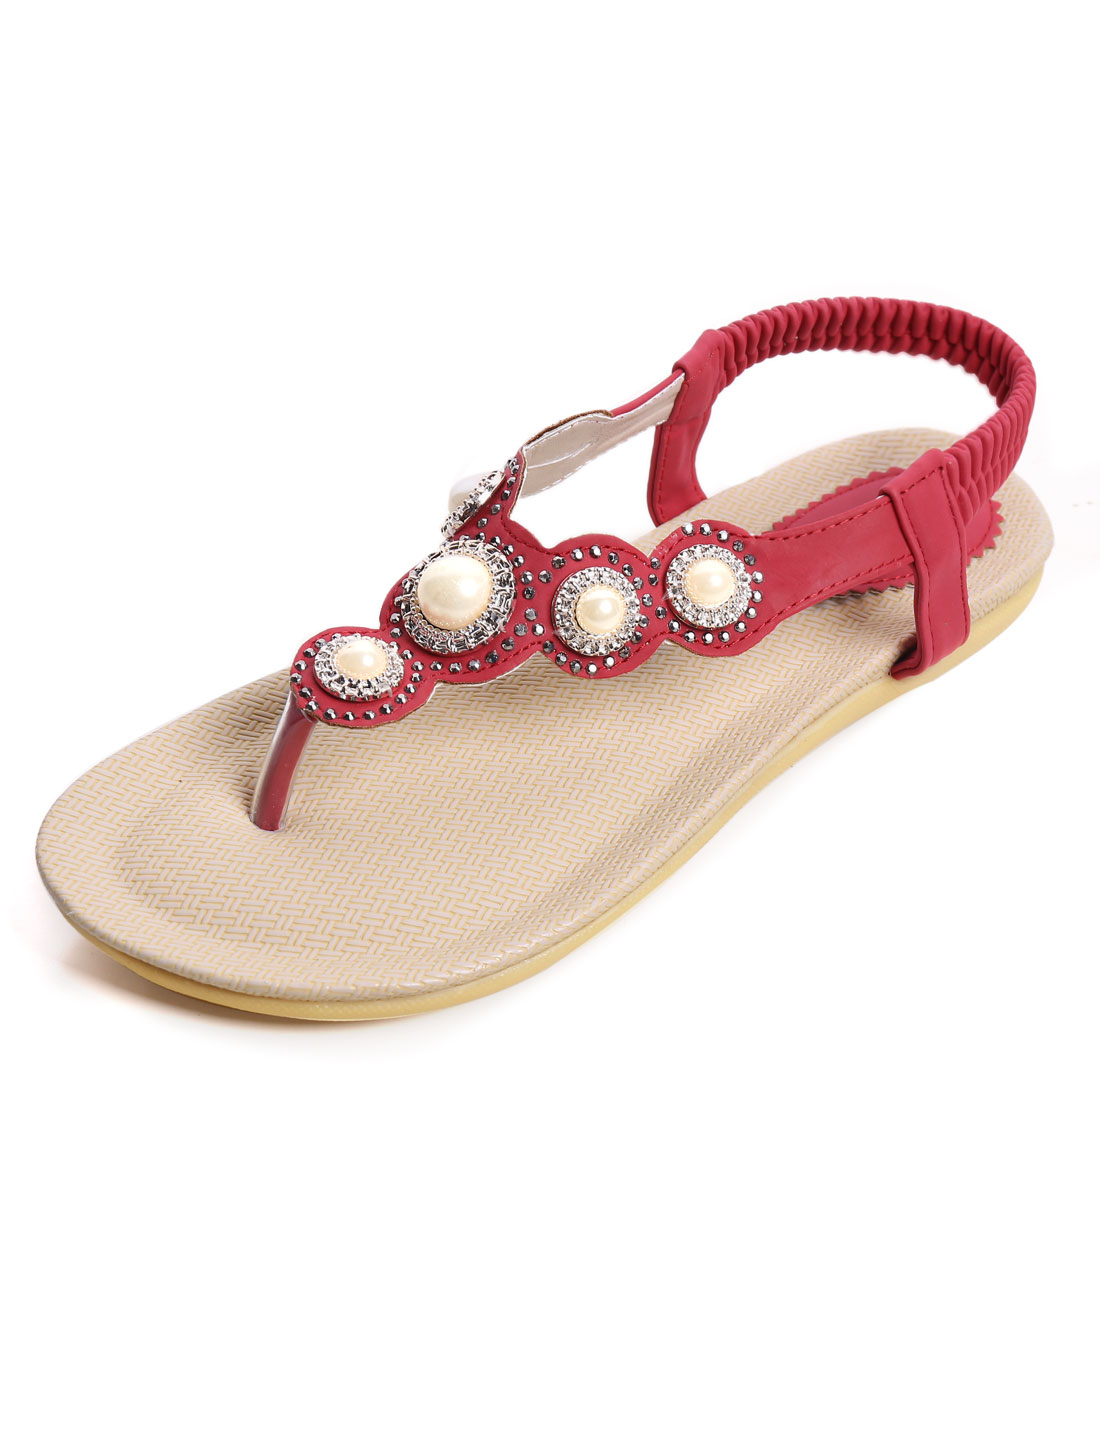 Woman Rhinestones Beaded Textured Outside Sandals Red US 8